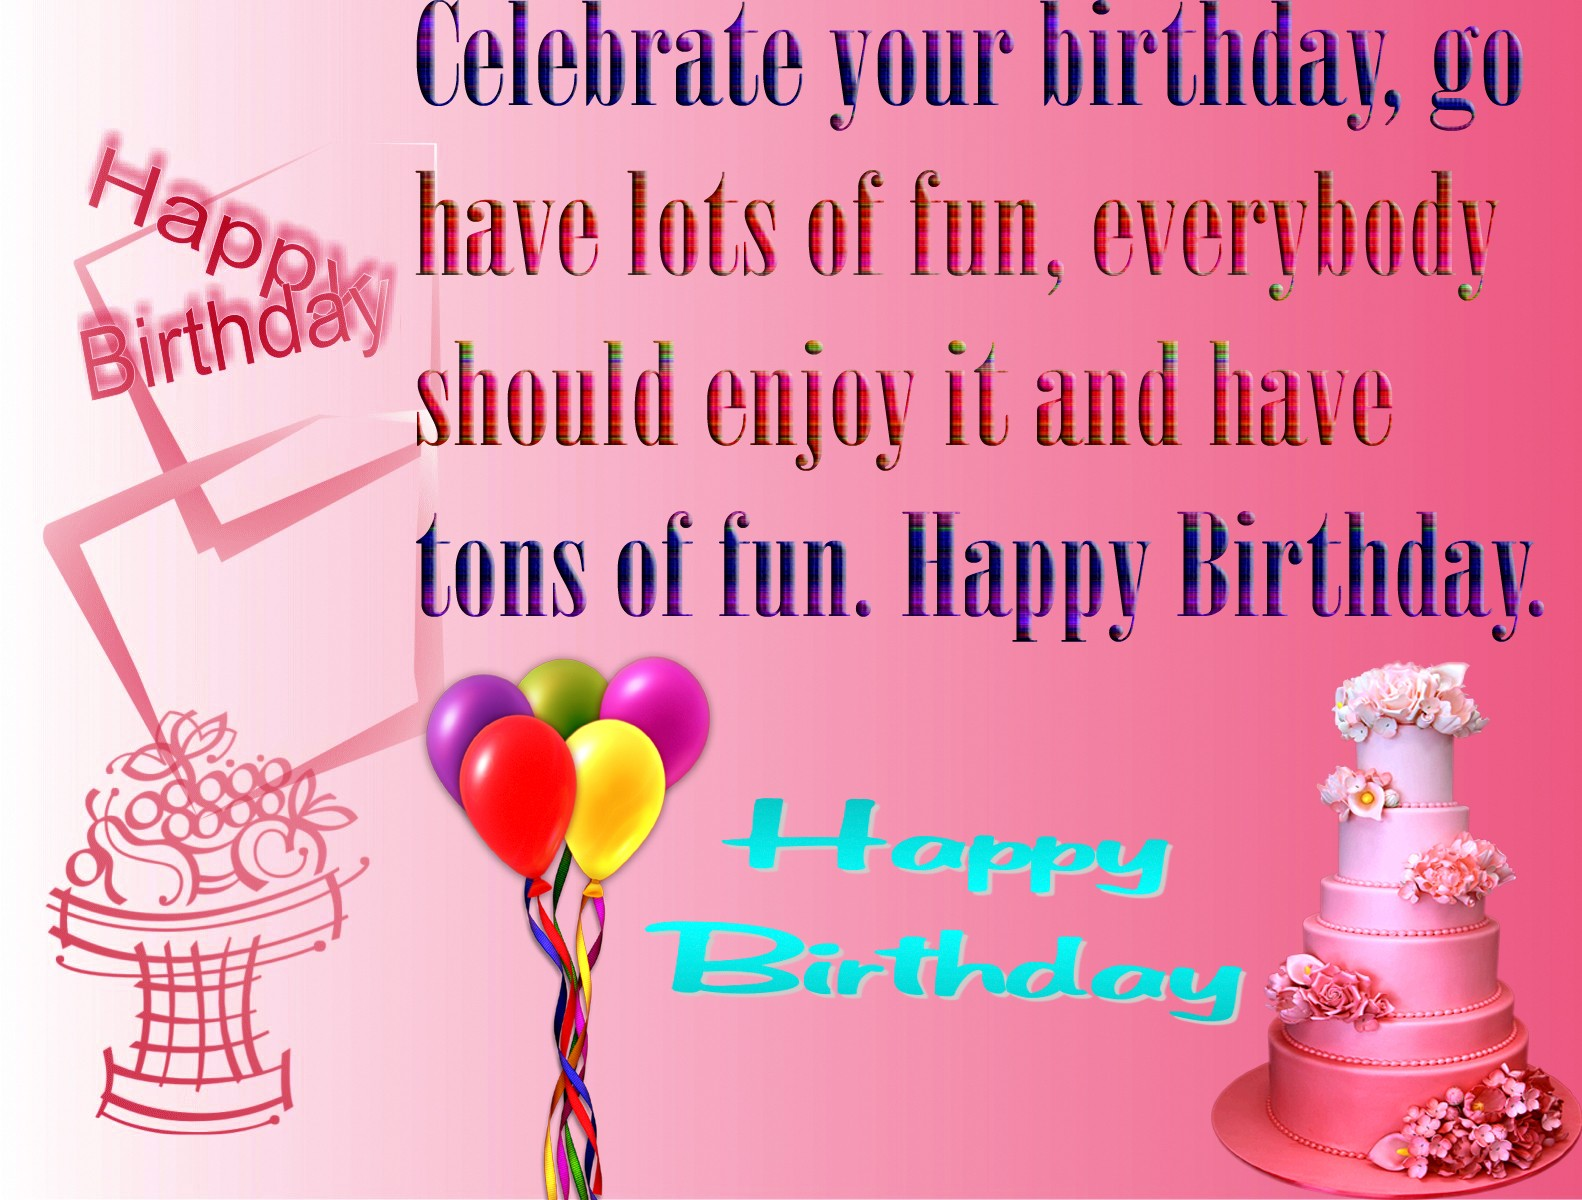 birthday message images download ; happy-birthday-wishes-message-for-friends-family